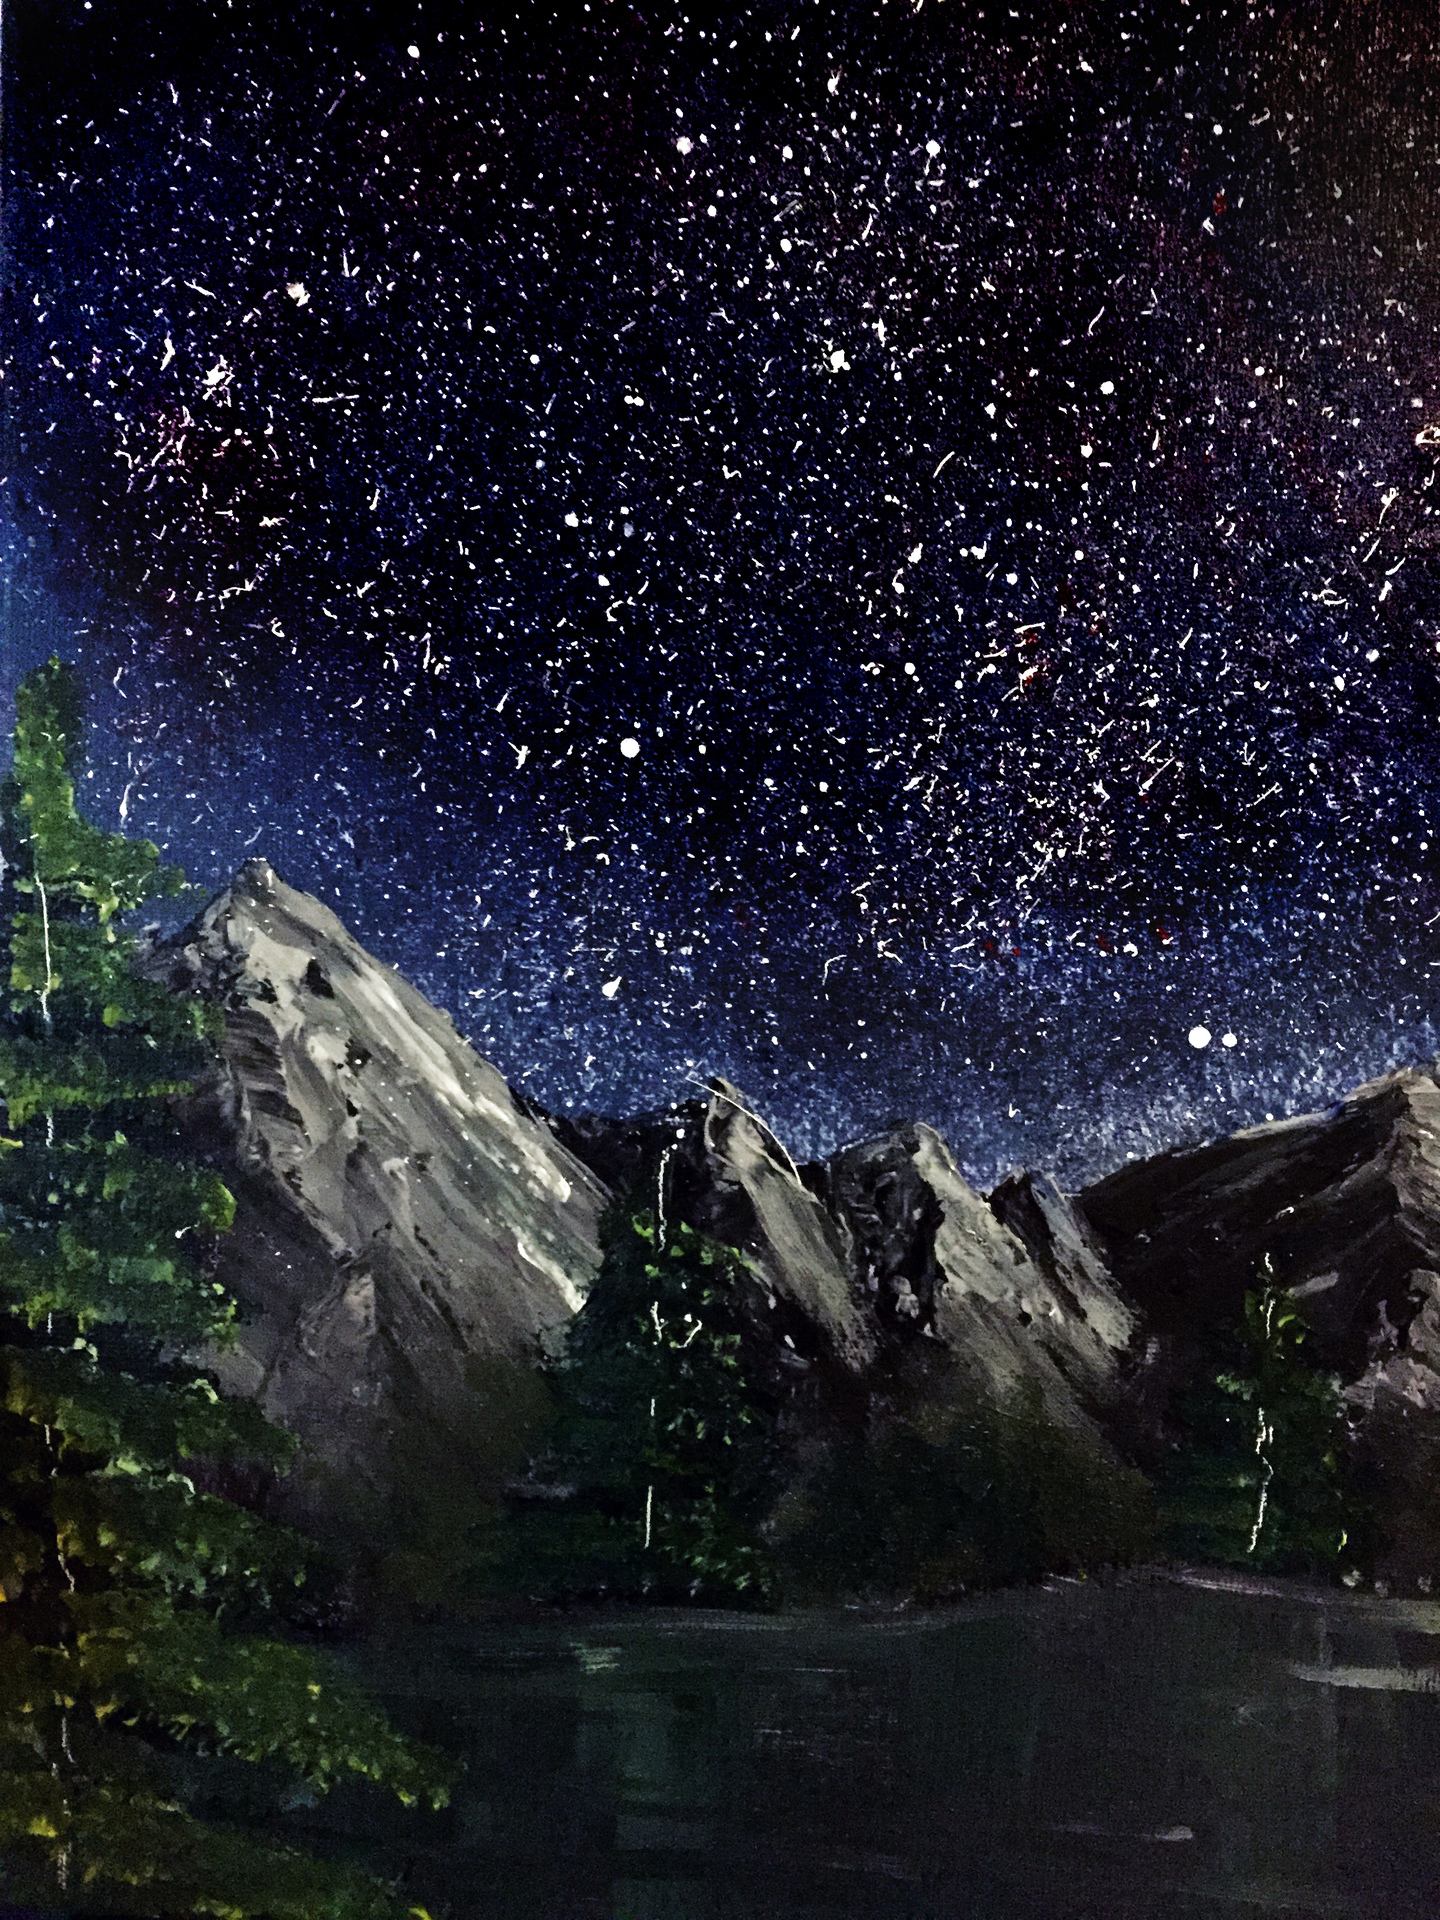 A nighttime landscape inspired by Bob Ross